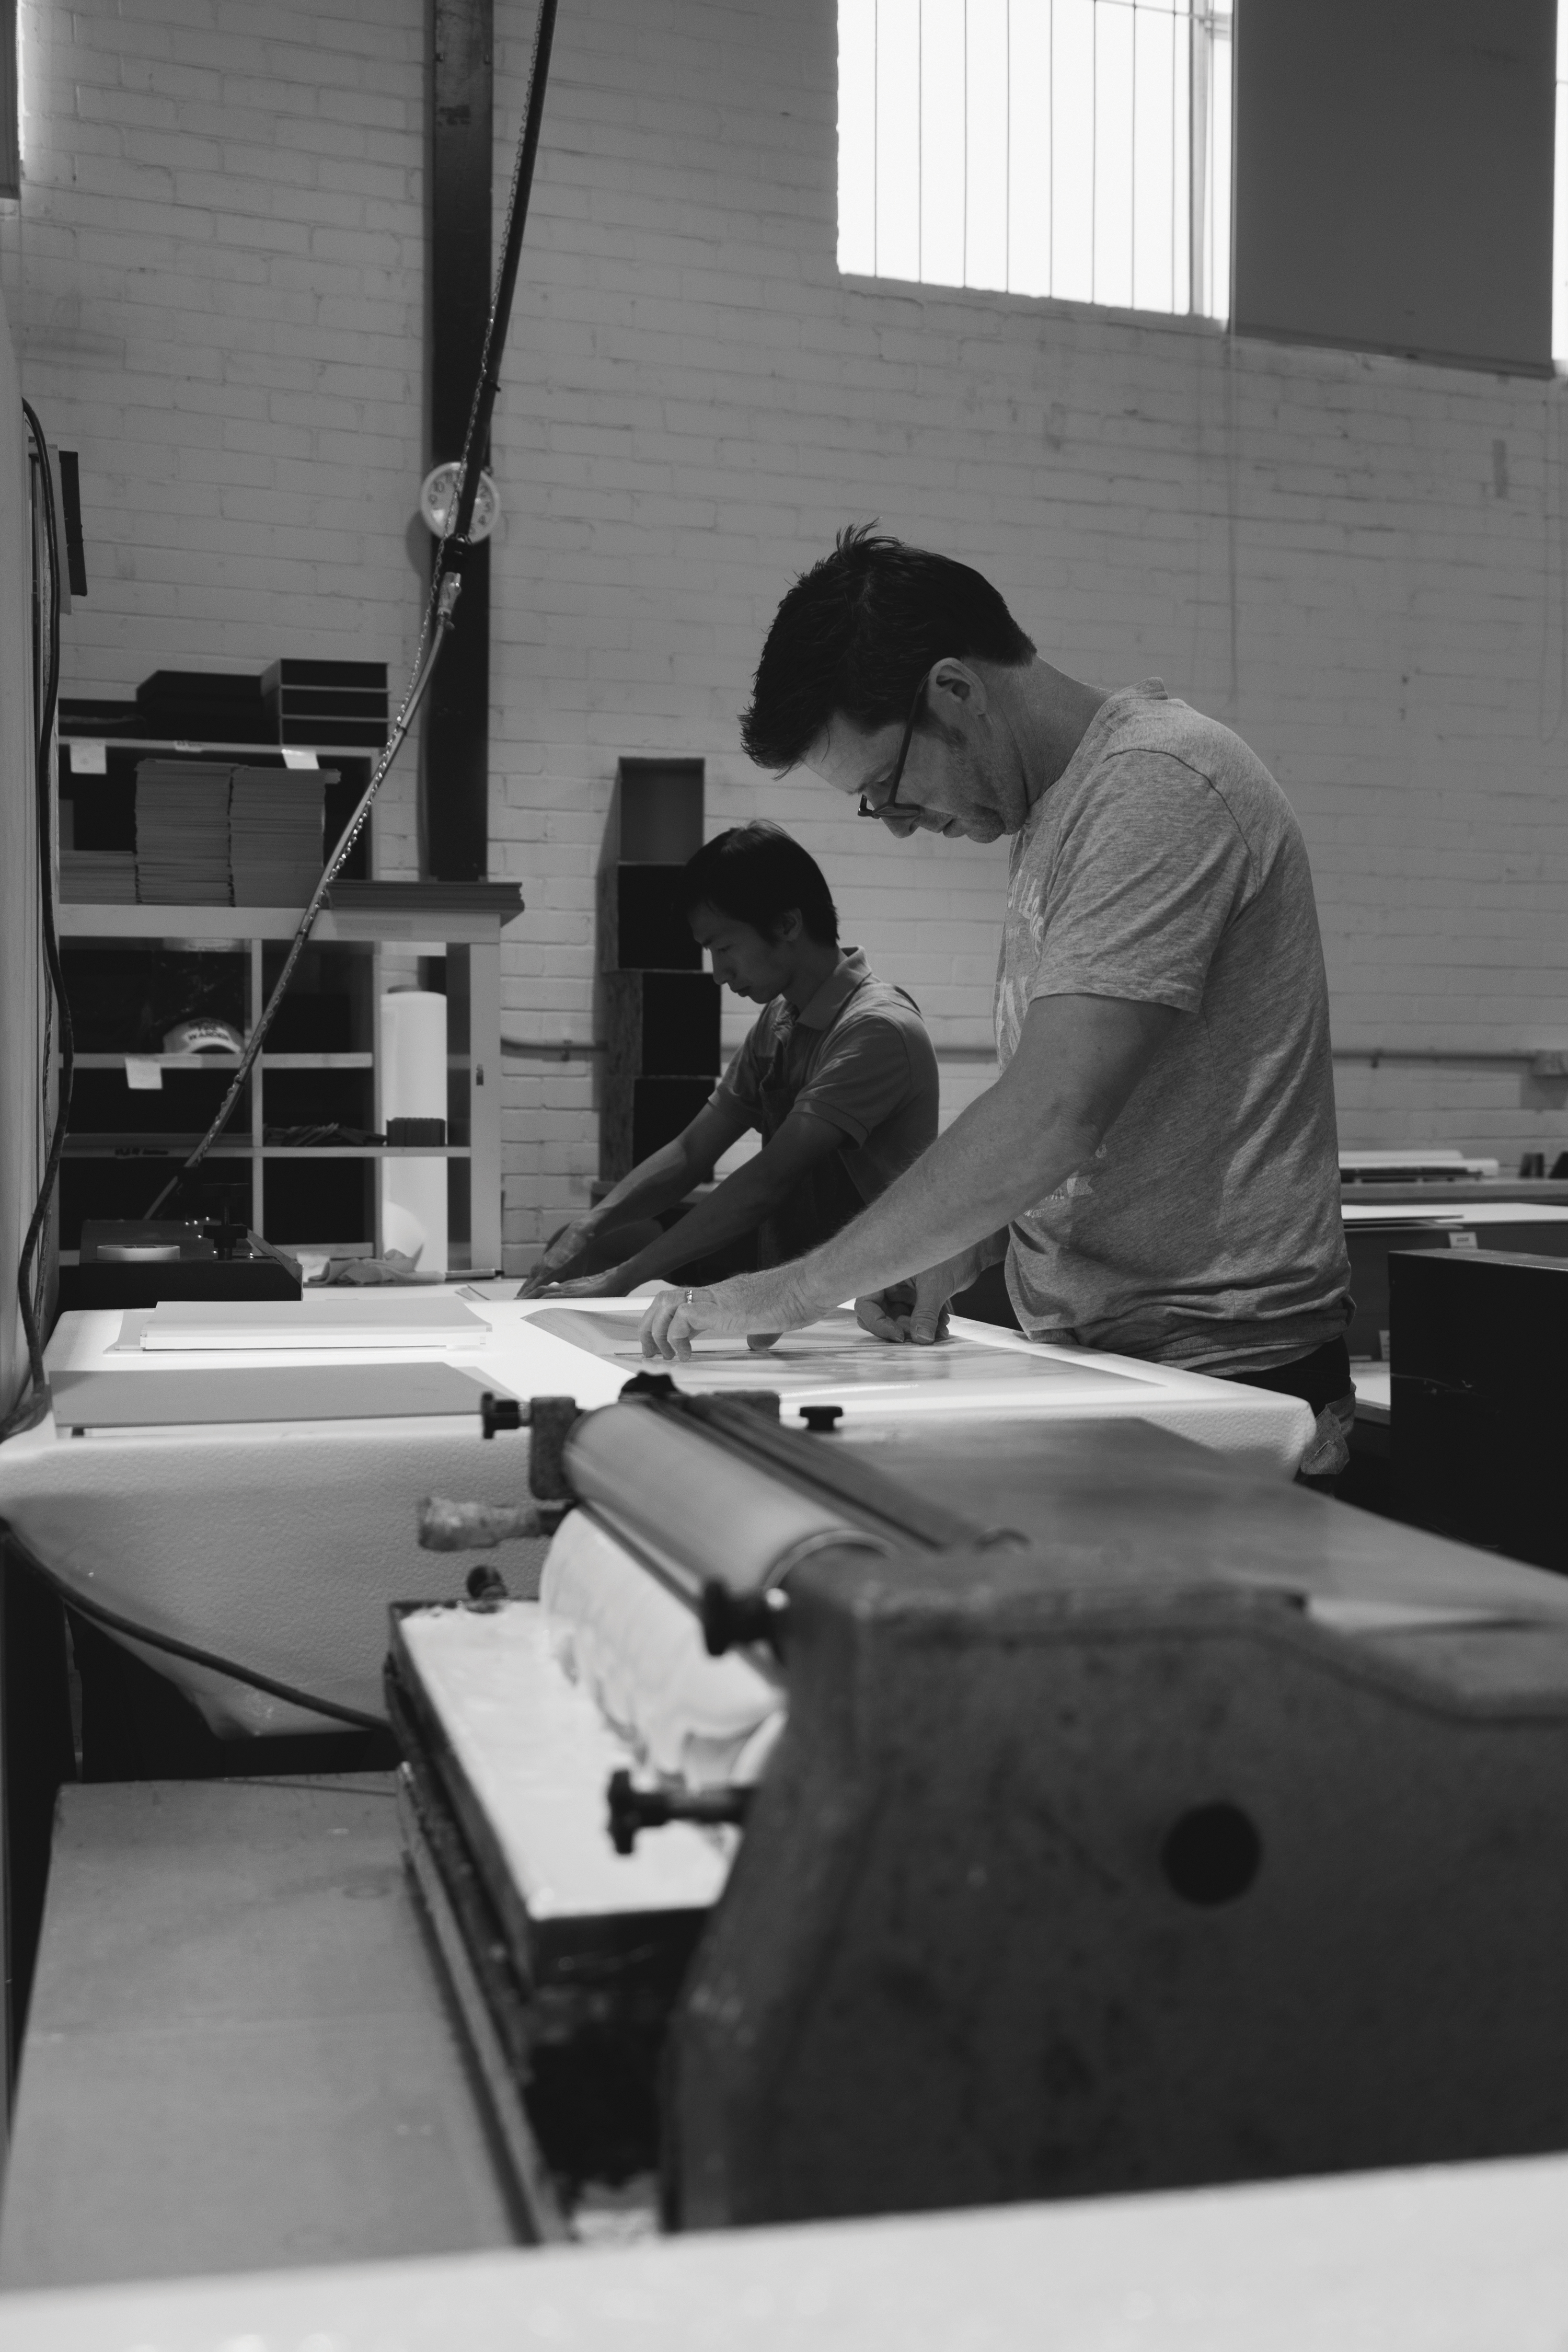 Meet our bookbinder Marty: 20 yearsstrong